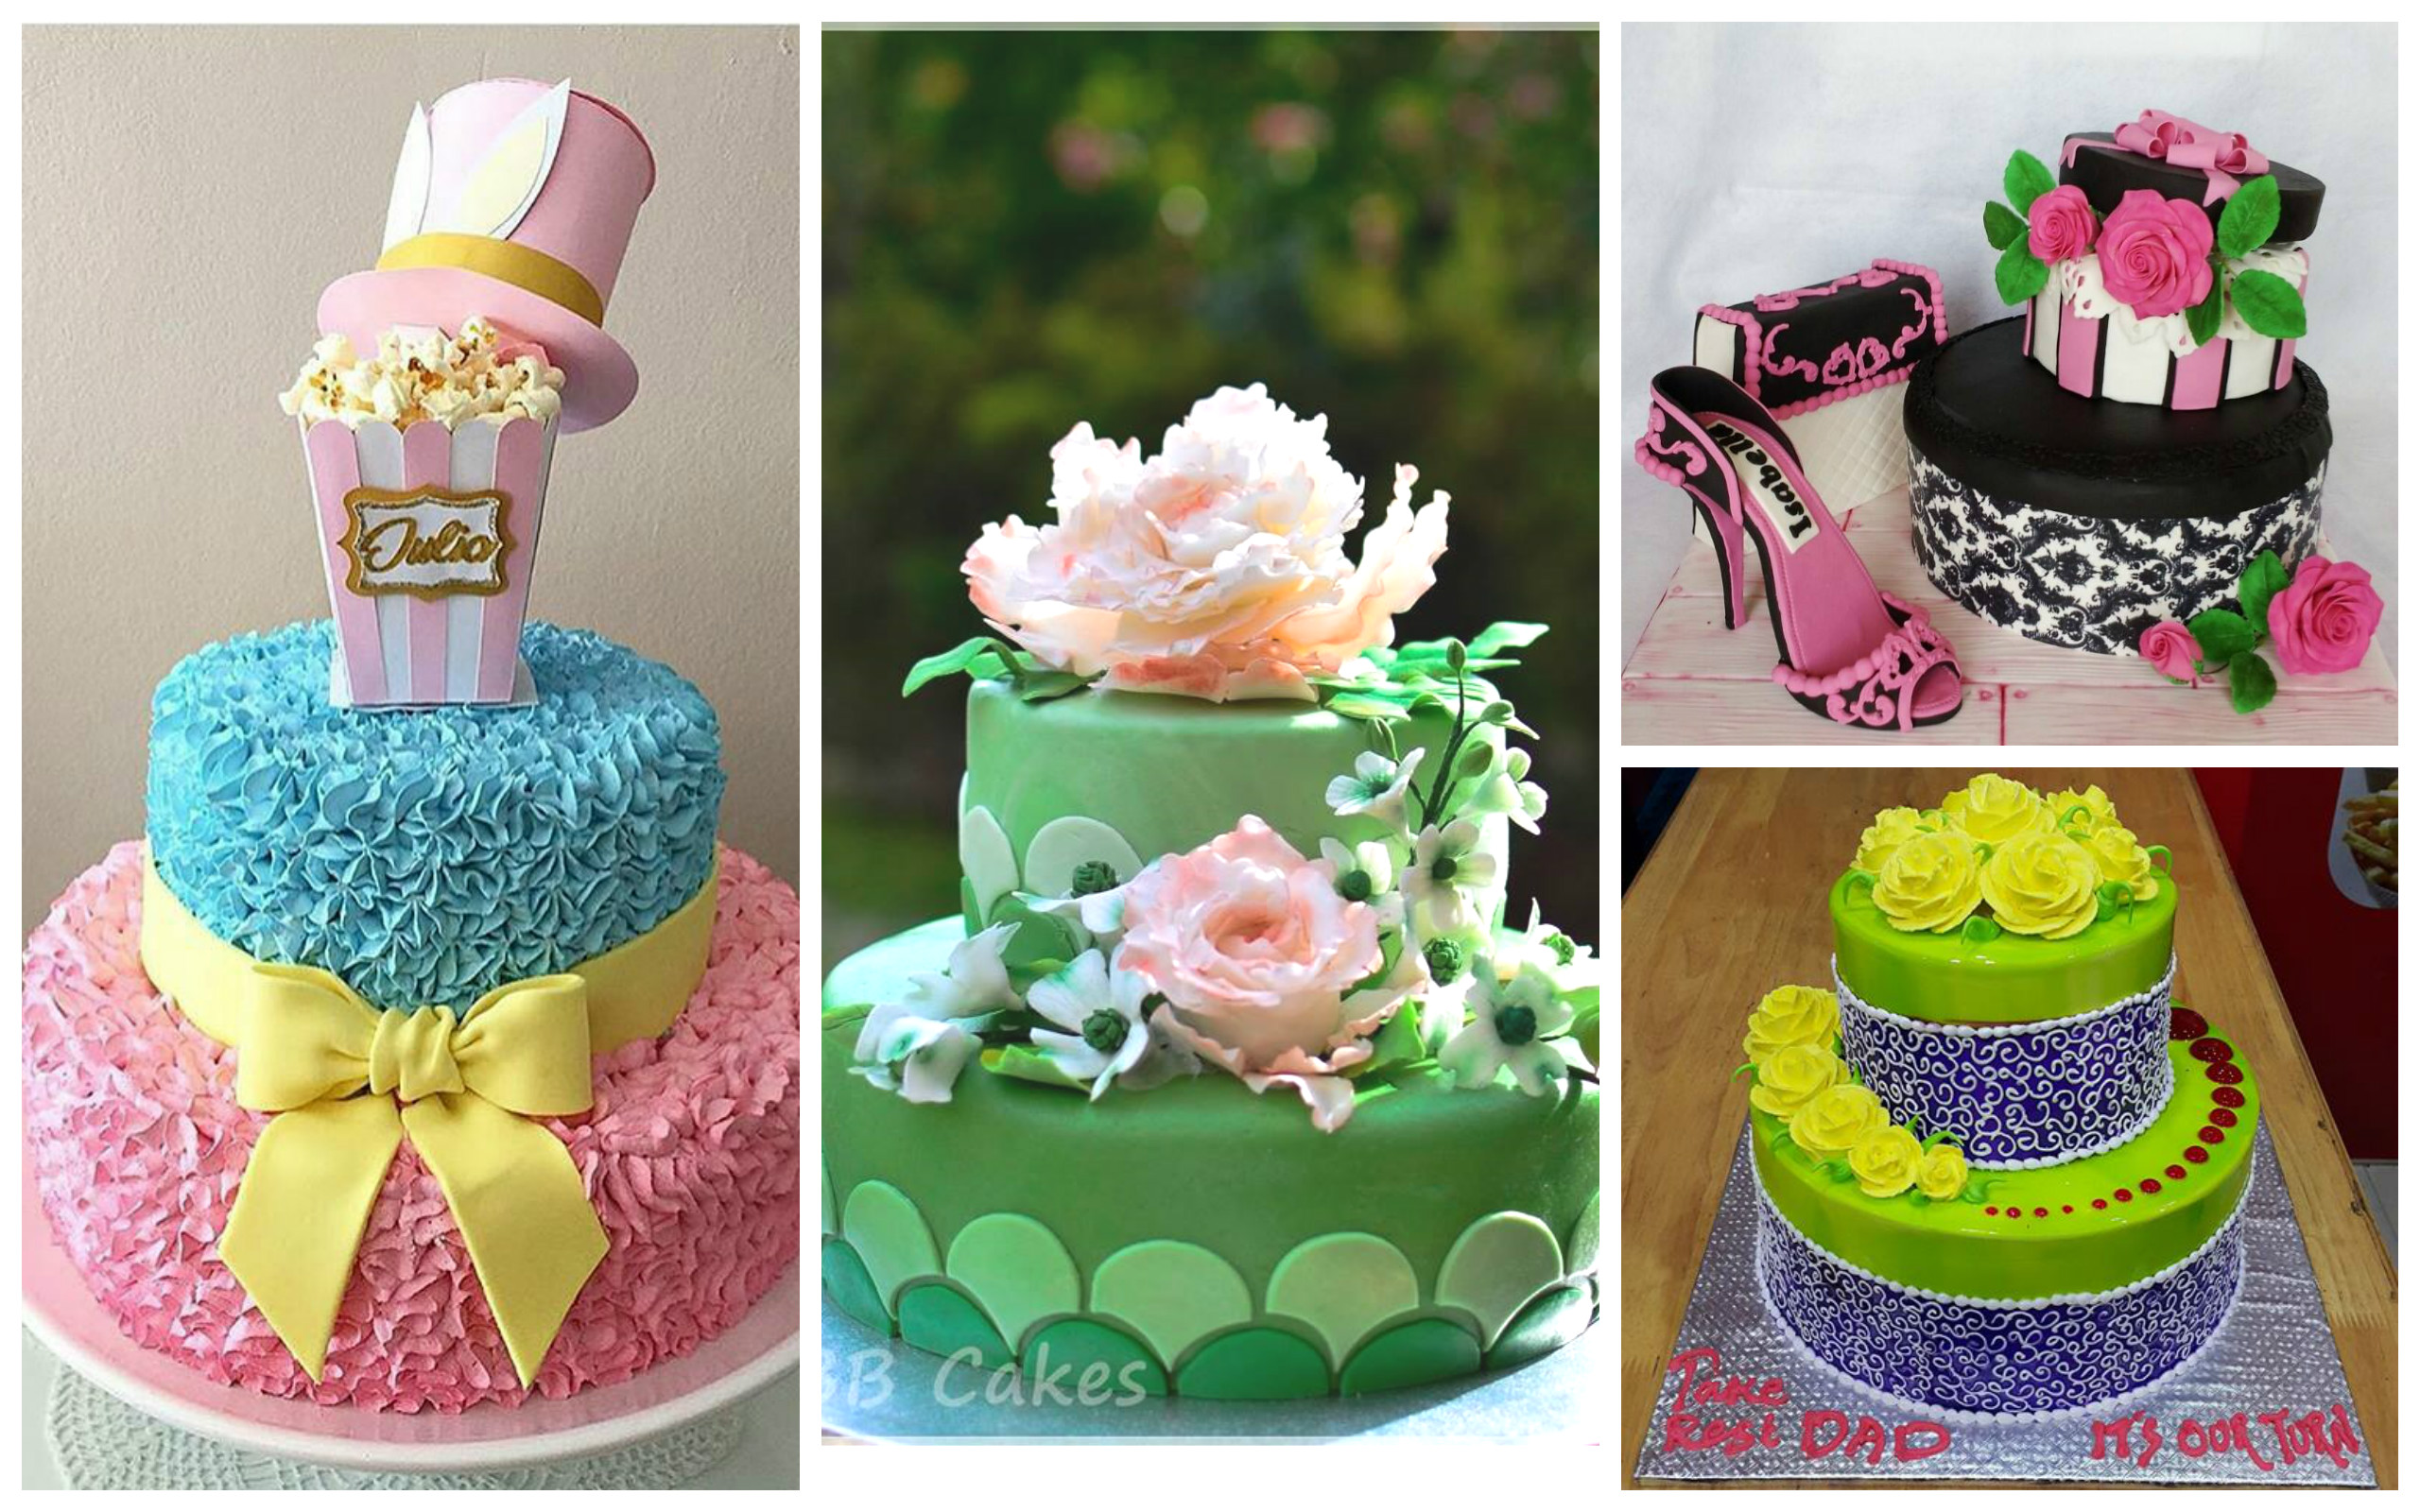 Cake Design Competition : Competition: The Number 1 Cake Expert In The World - Page ...